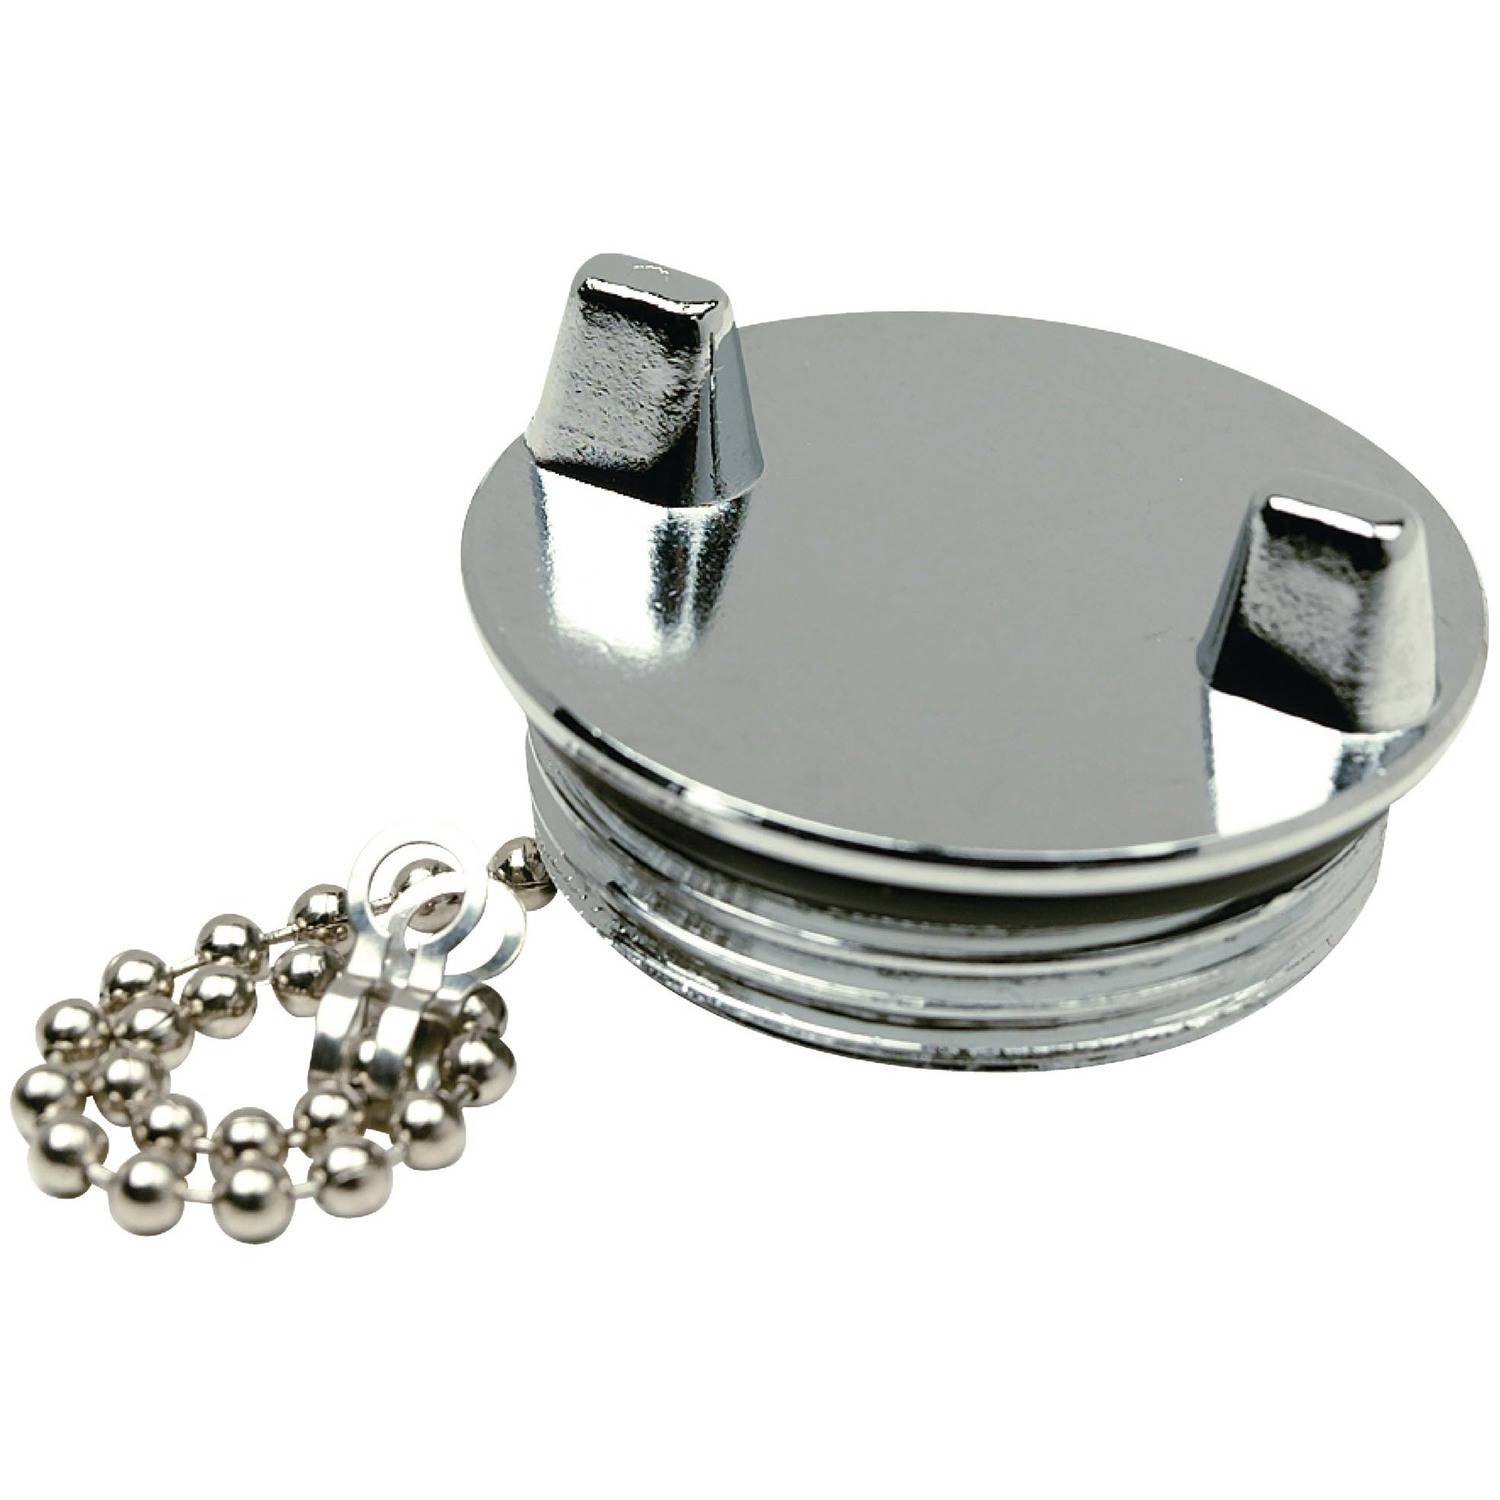 Seachoice Chrome Plated Zamak Replacement Cap For Seachoice Deck Fill 32041